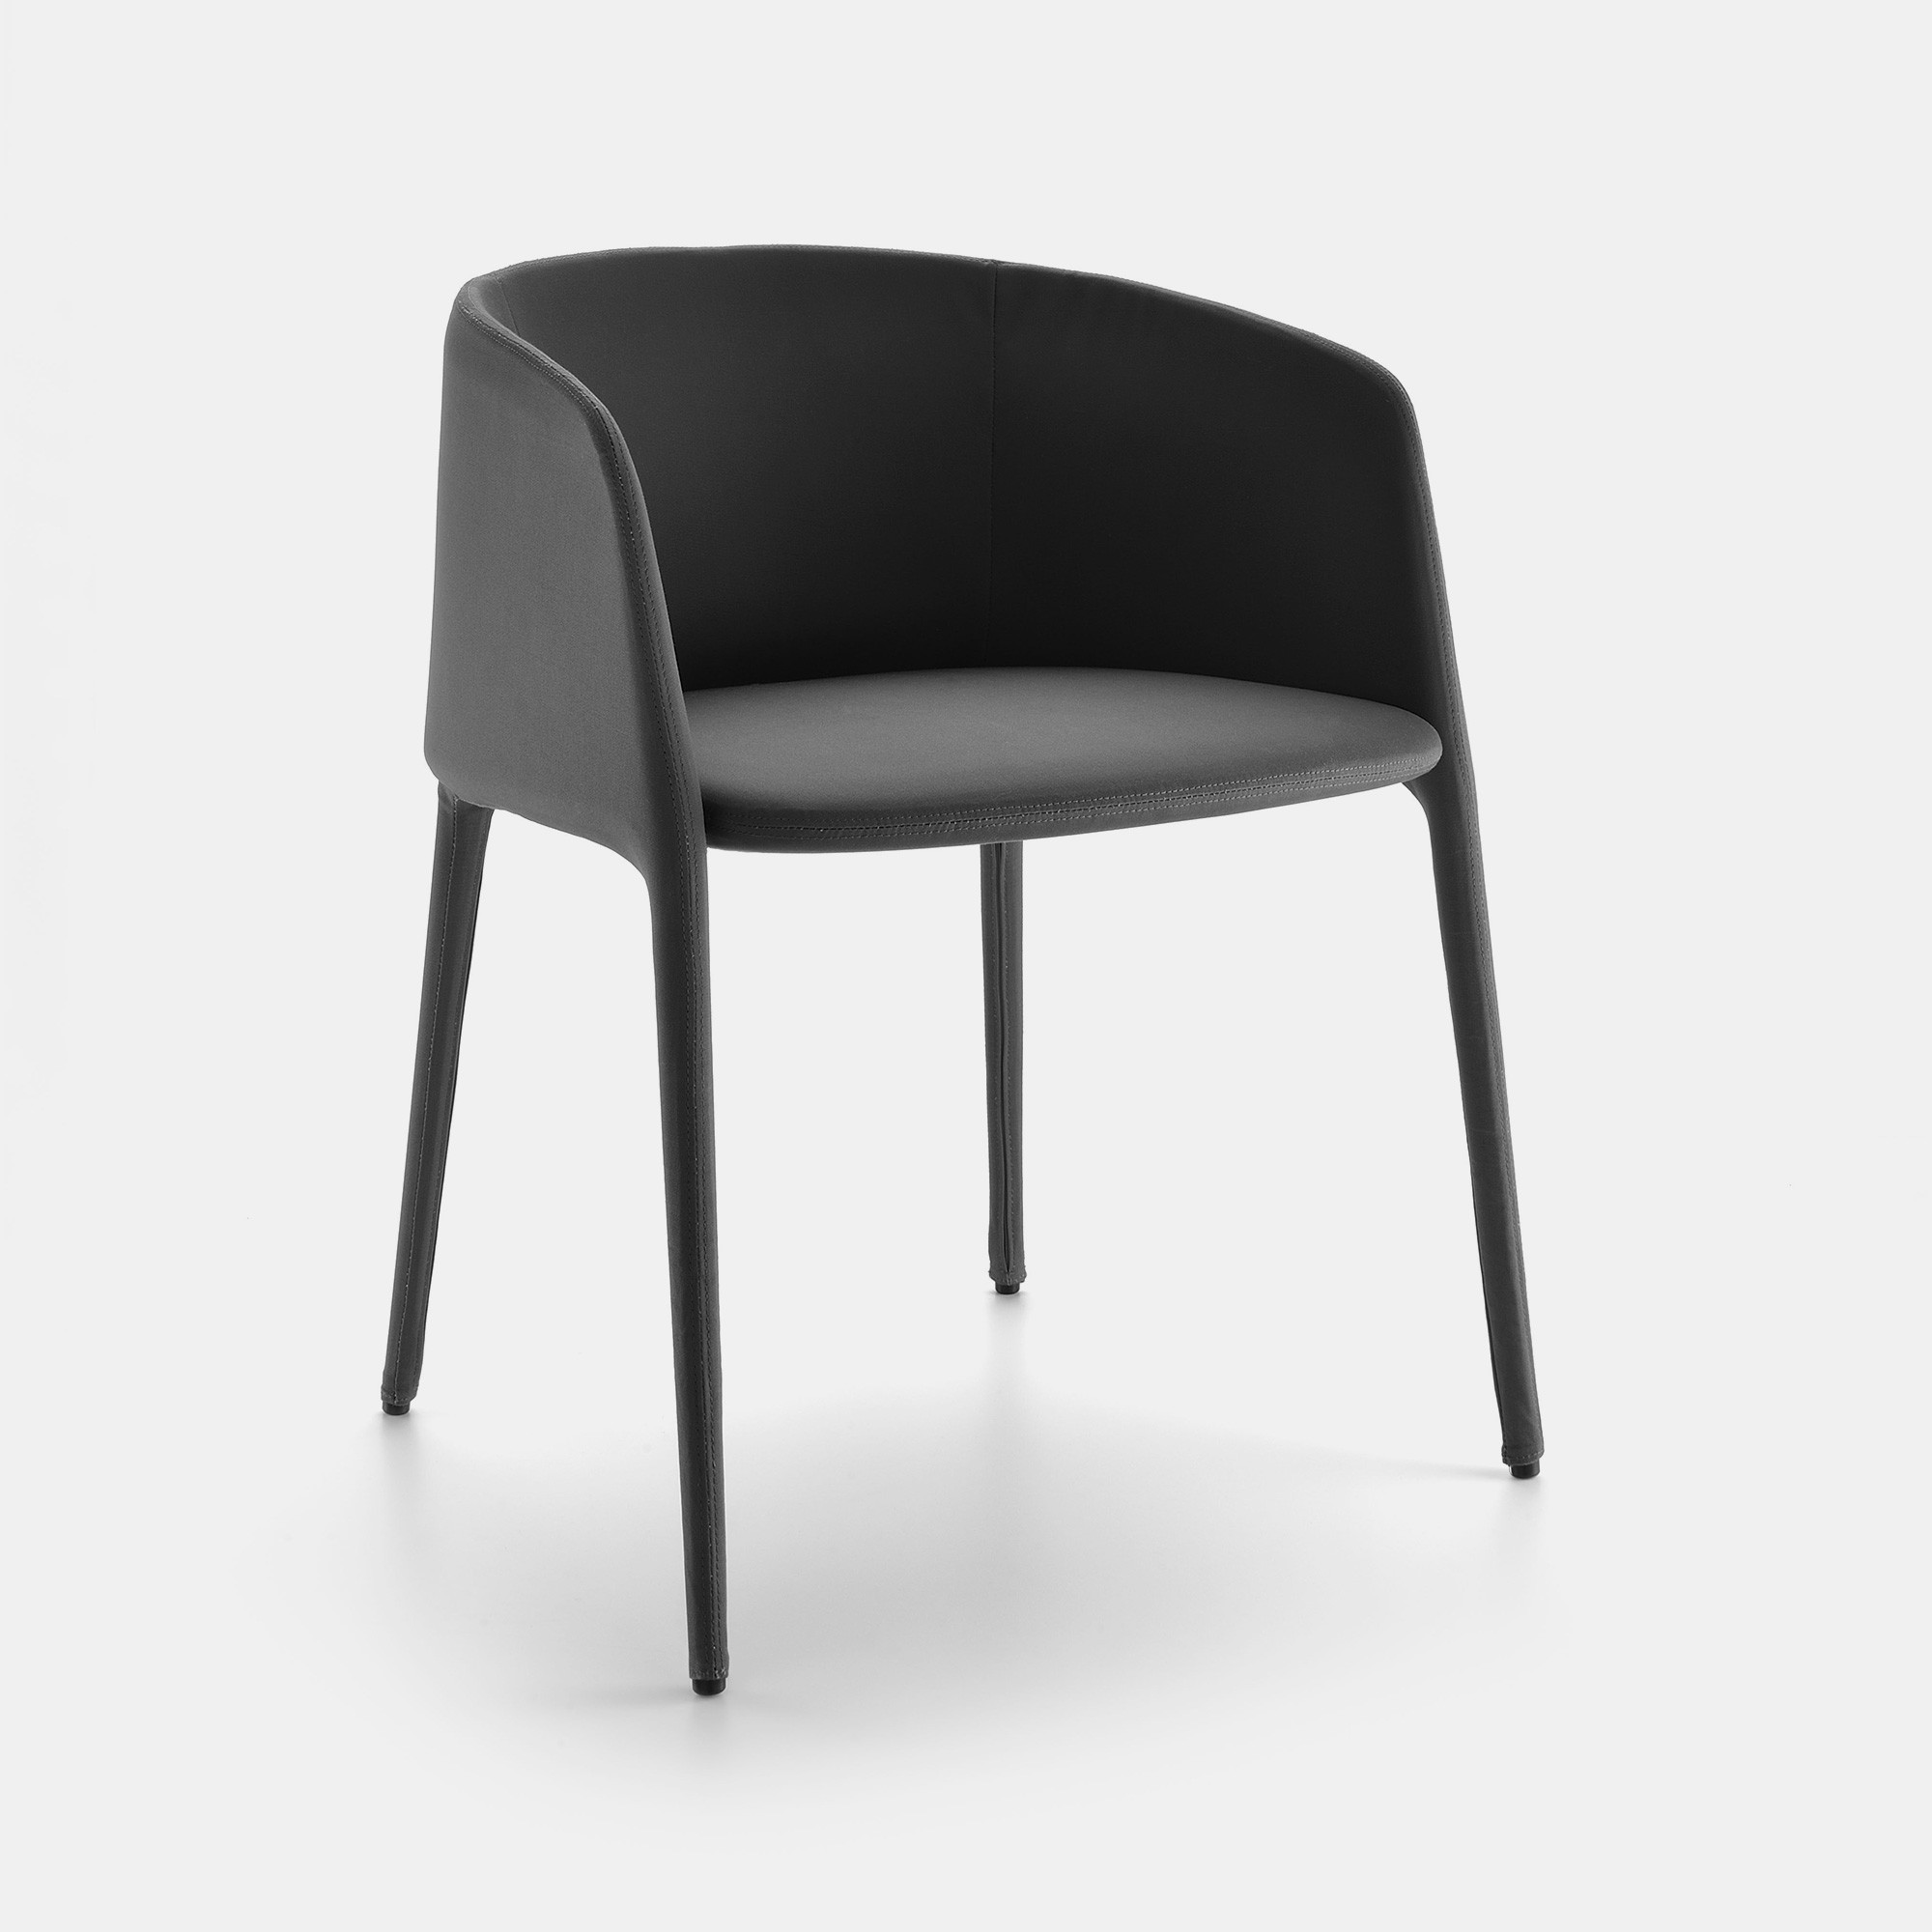 Achille armchair for Mdf italia spa